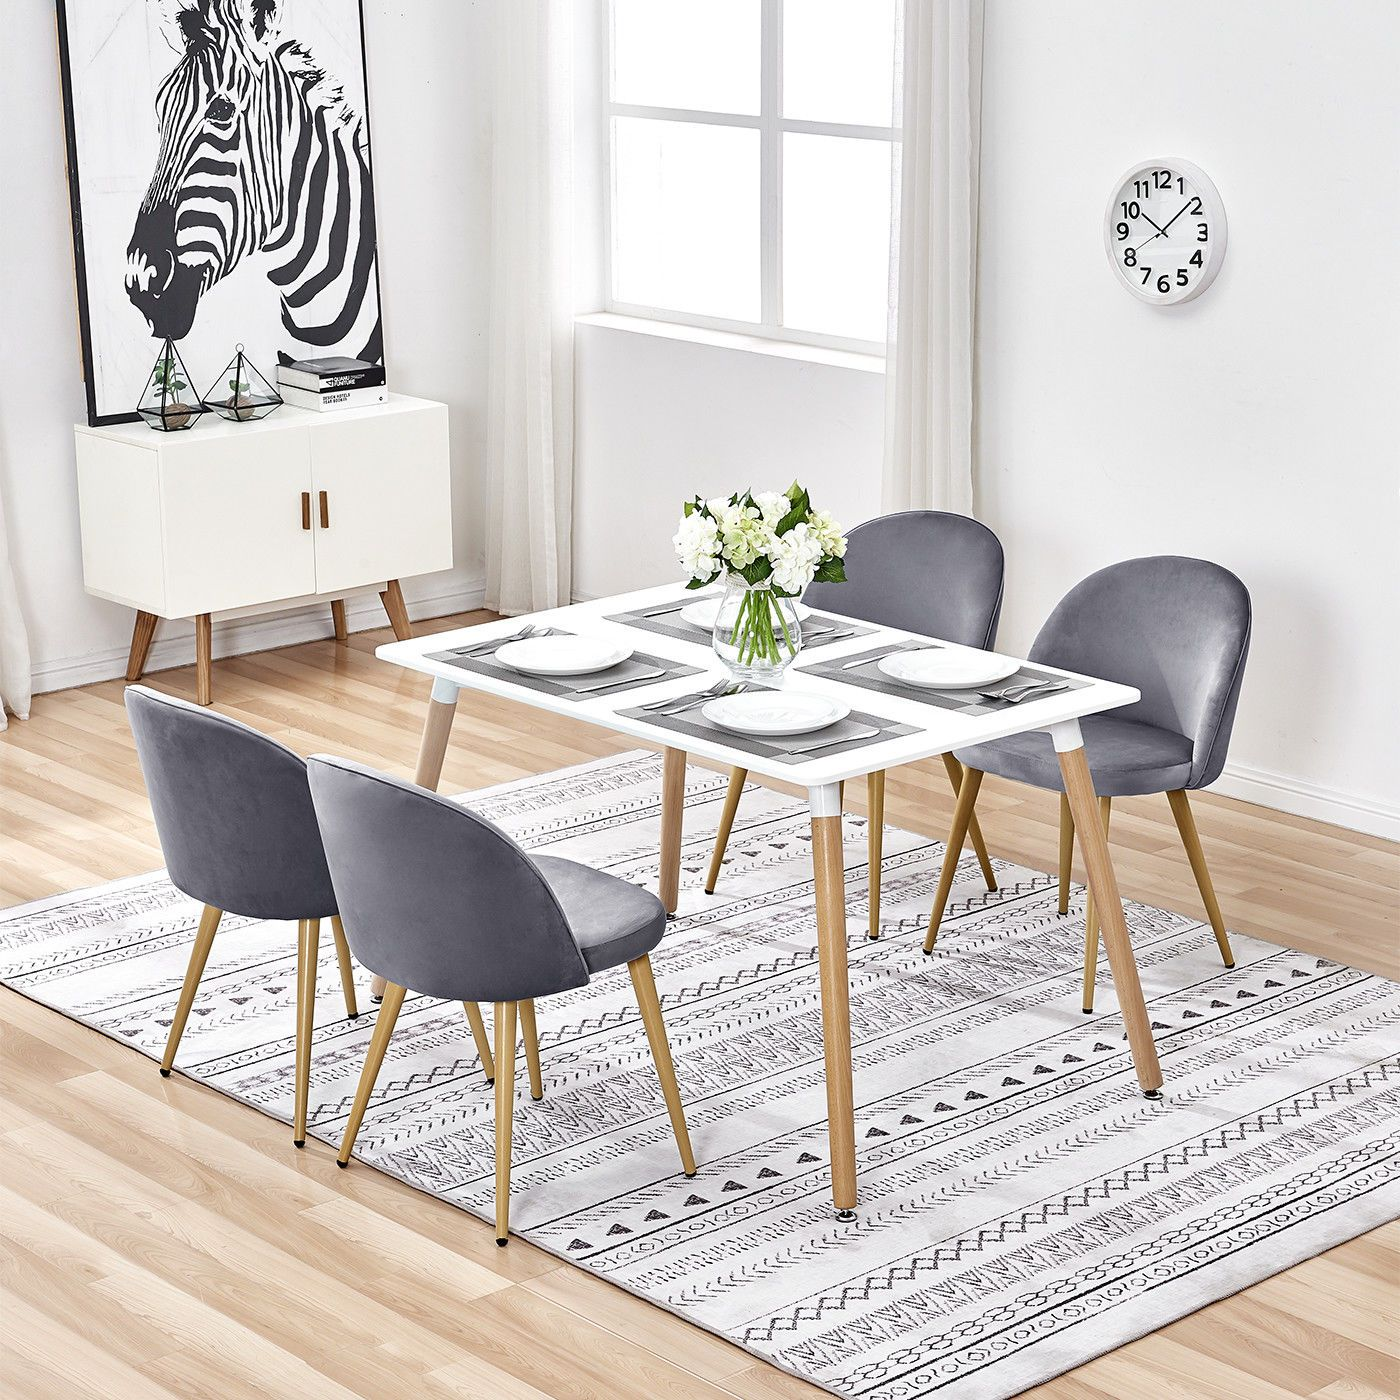 Details about Modern Kitchen Table and 4 Dining Chairs